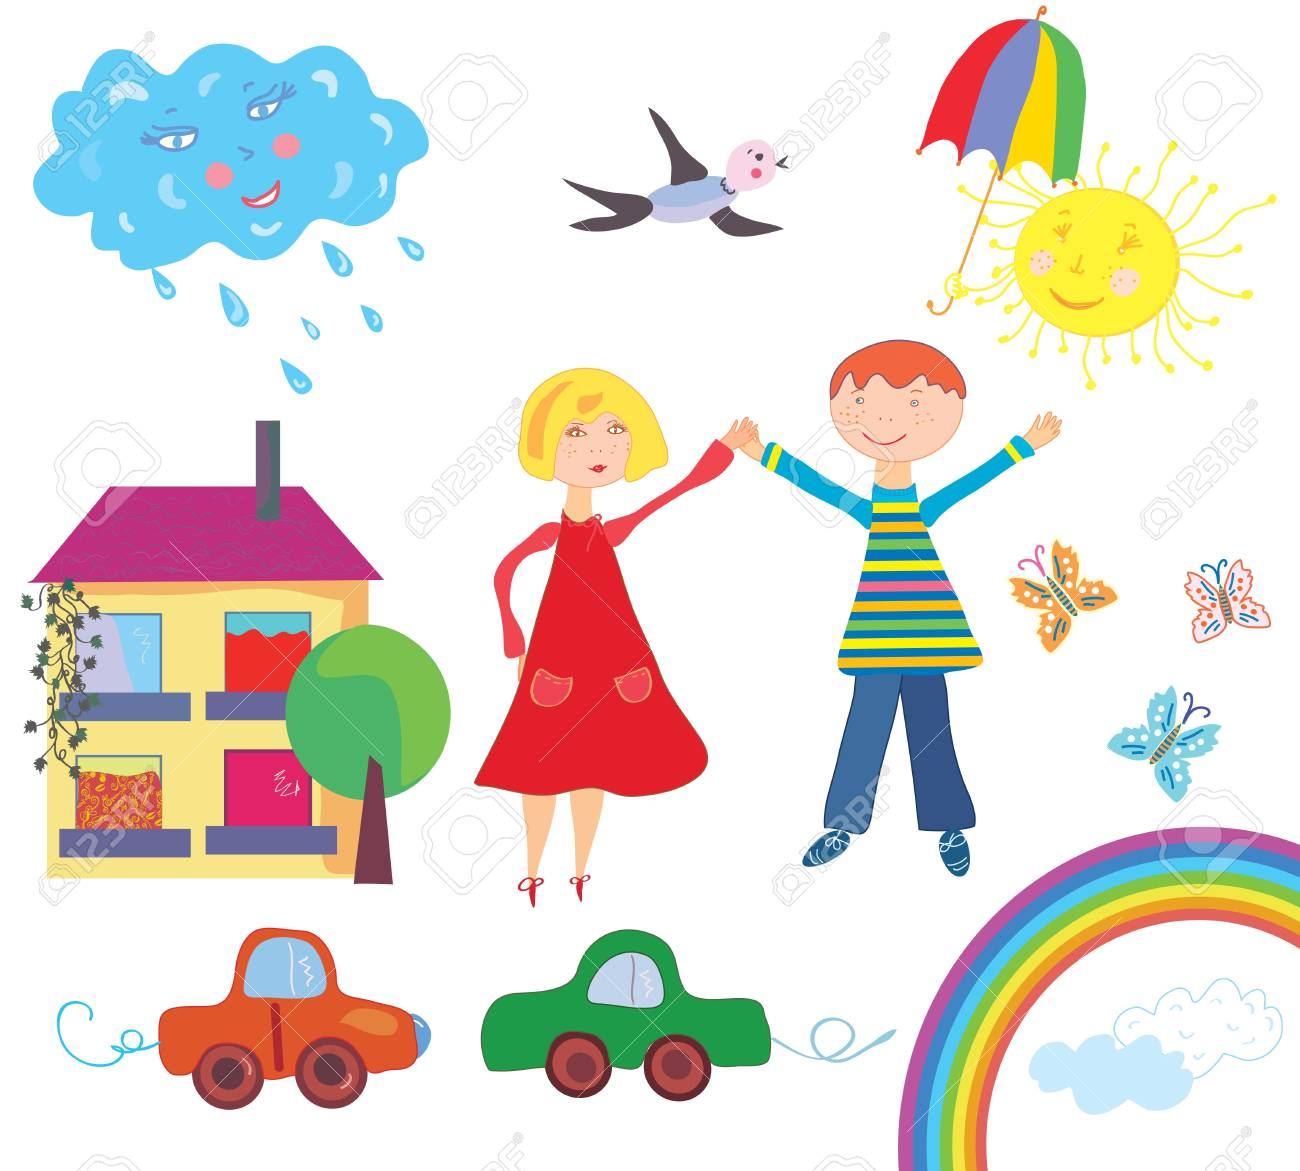 Children set with objects and nature Stock Vector - 13857024